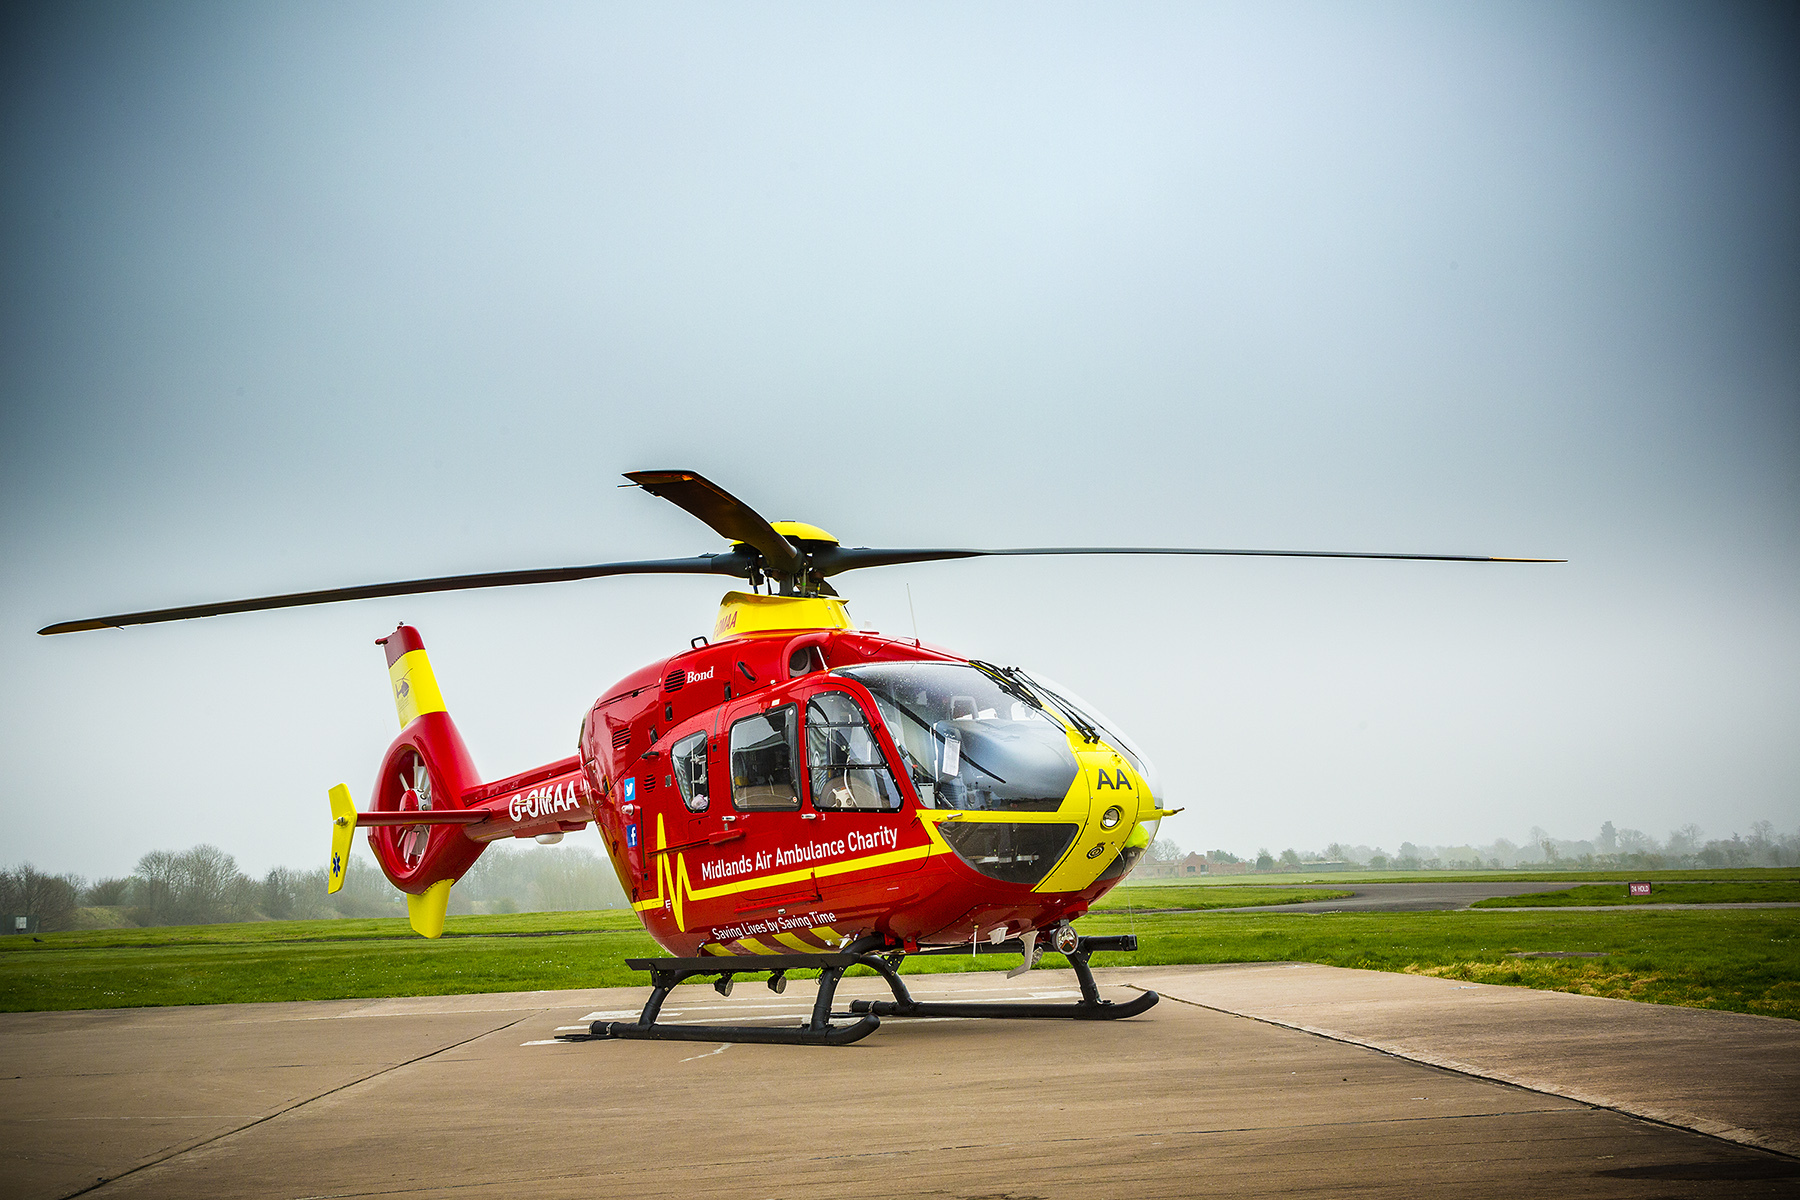 The new G-OMAA EC135T2e Midlands Air Ambulance helicopter